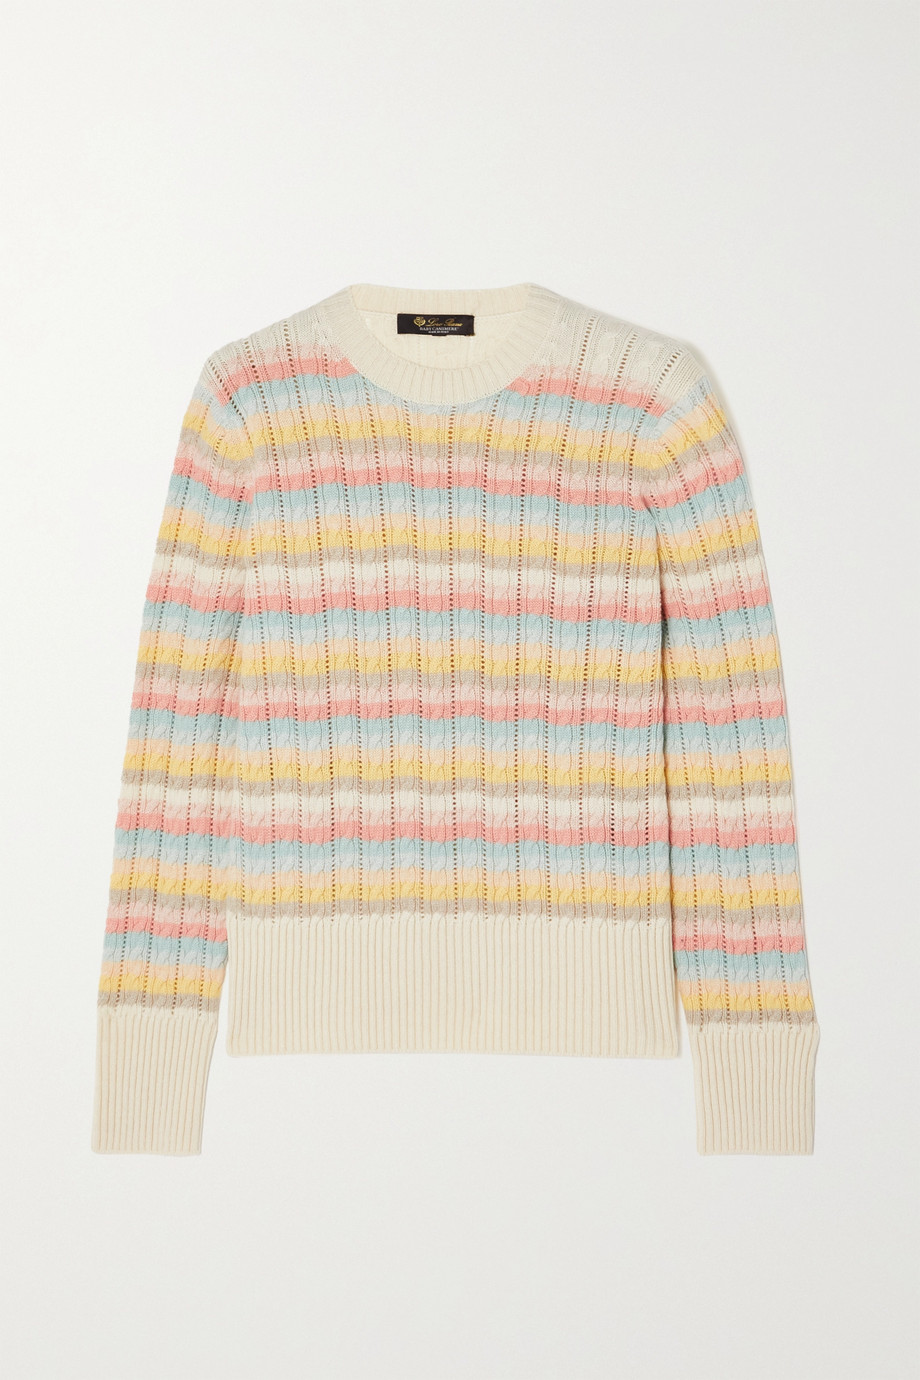 Loro Piana Vence striped cable-knit cashmere sweater